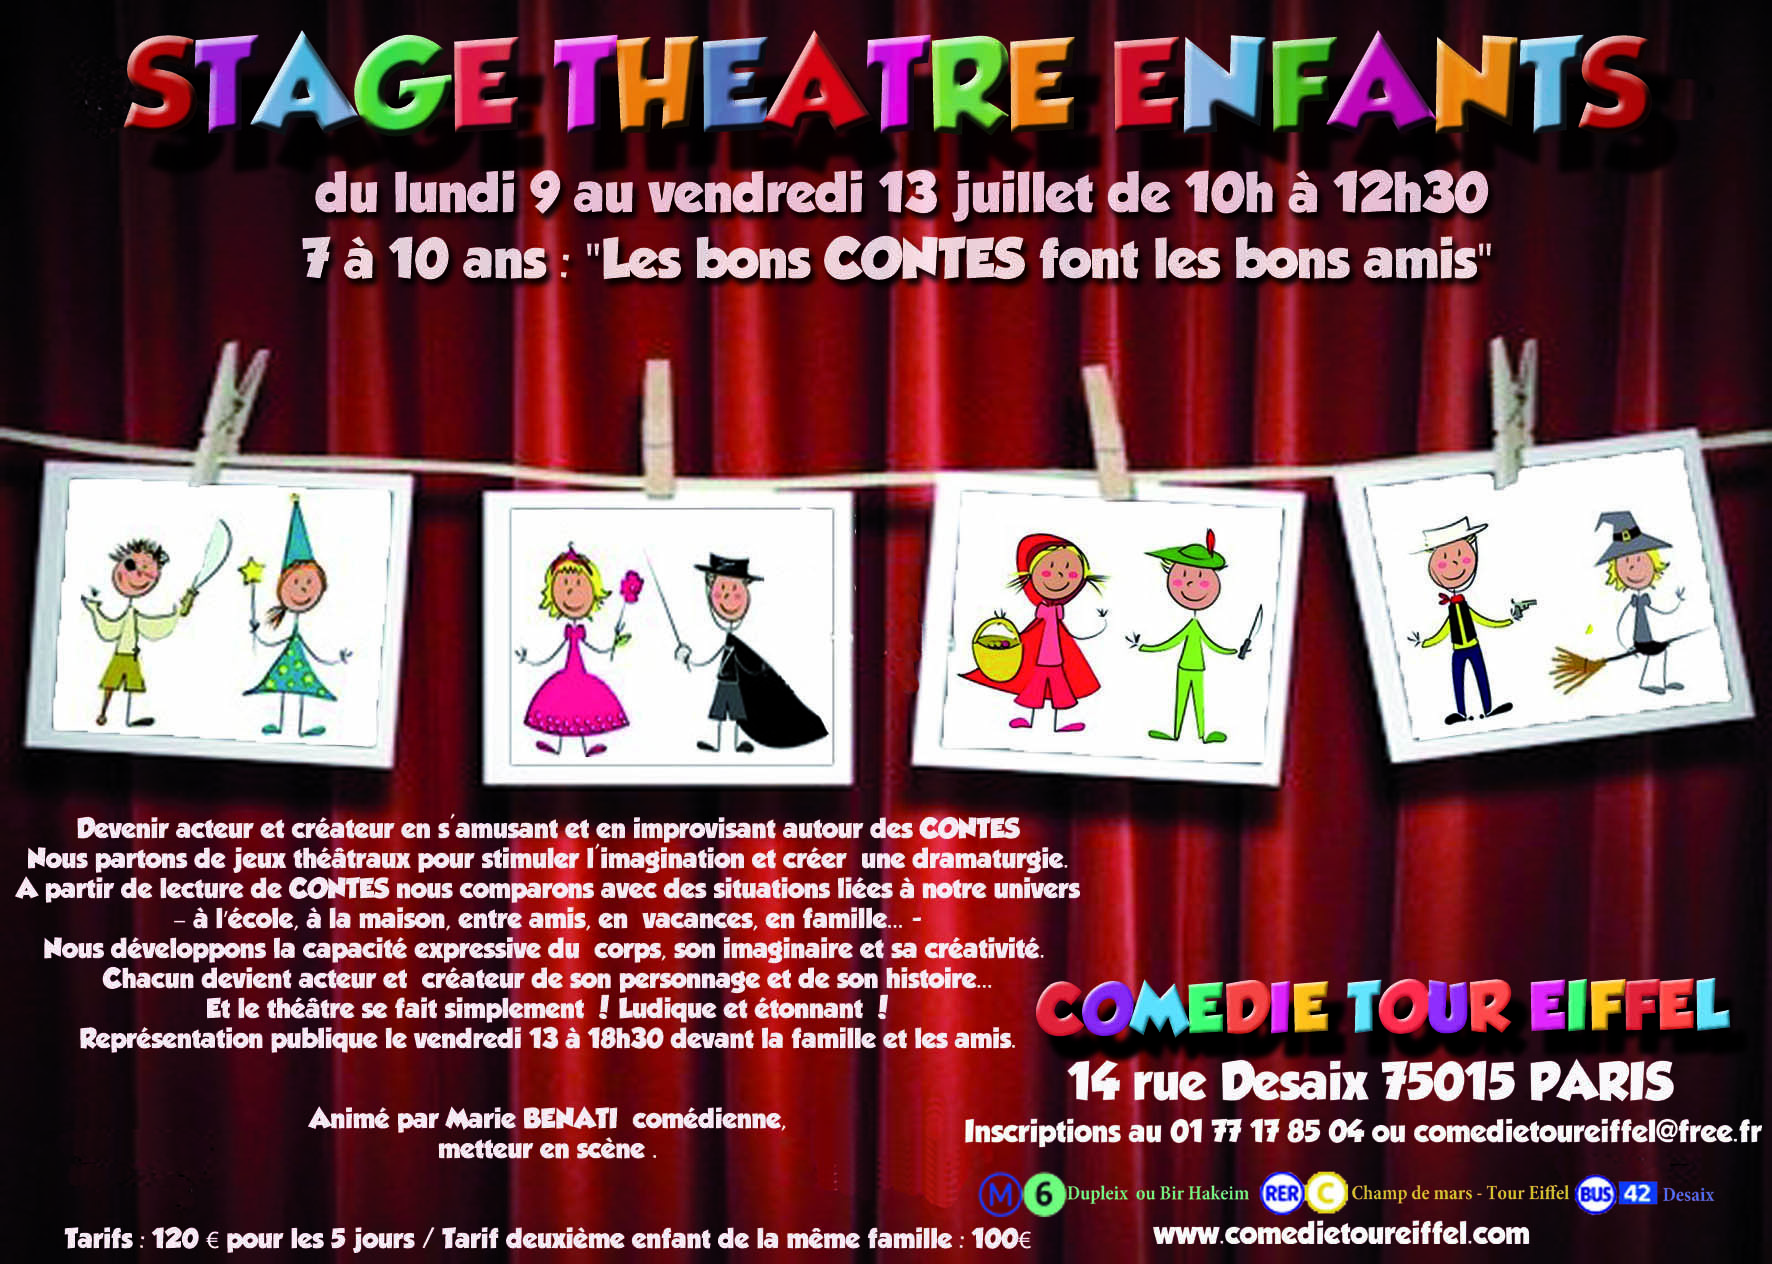 salle spectacle 15eme